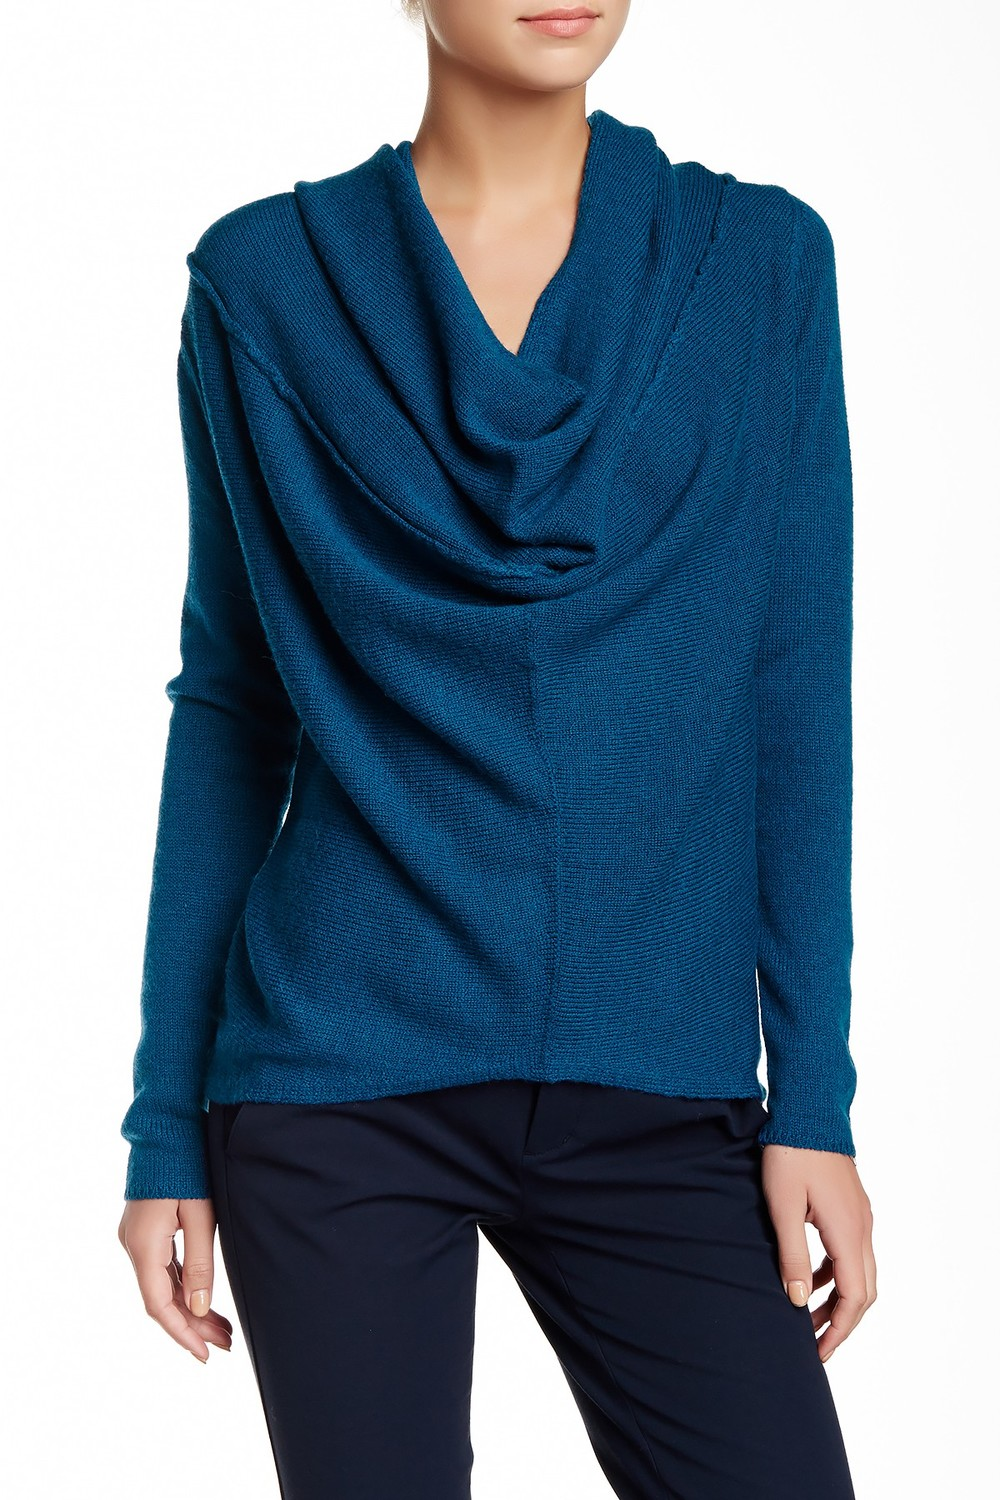 VINCE Drape Front Sweater. Available in two colors. Nordstrom Rack. Was: $325 Now: $149.